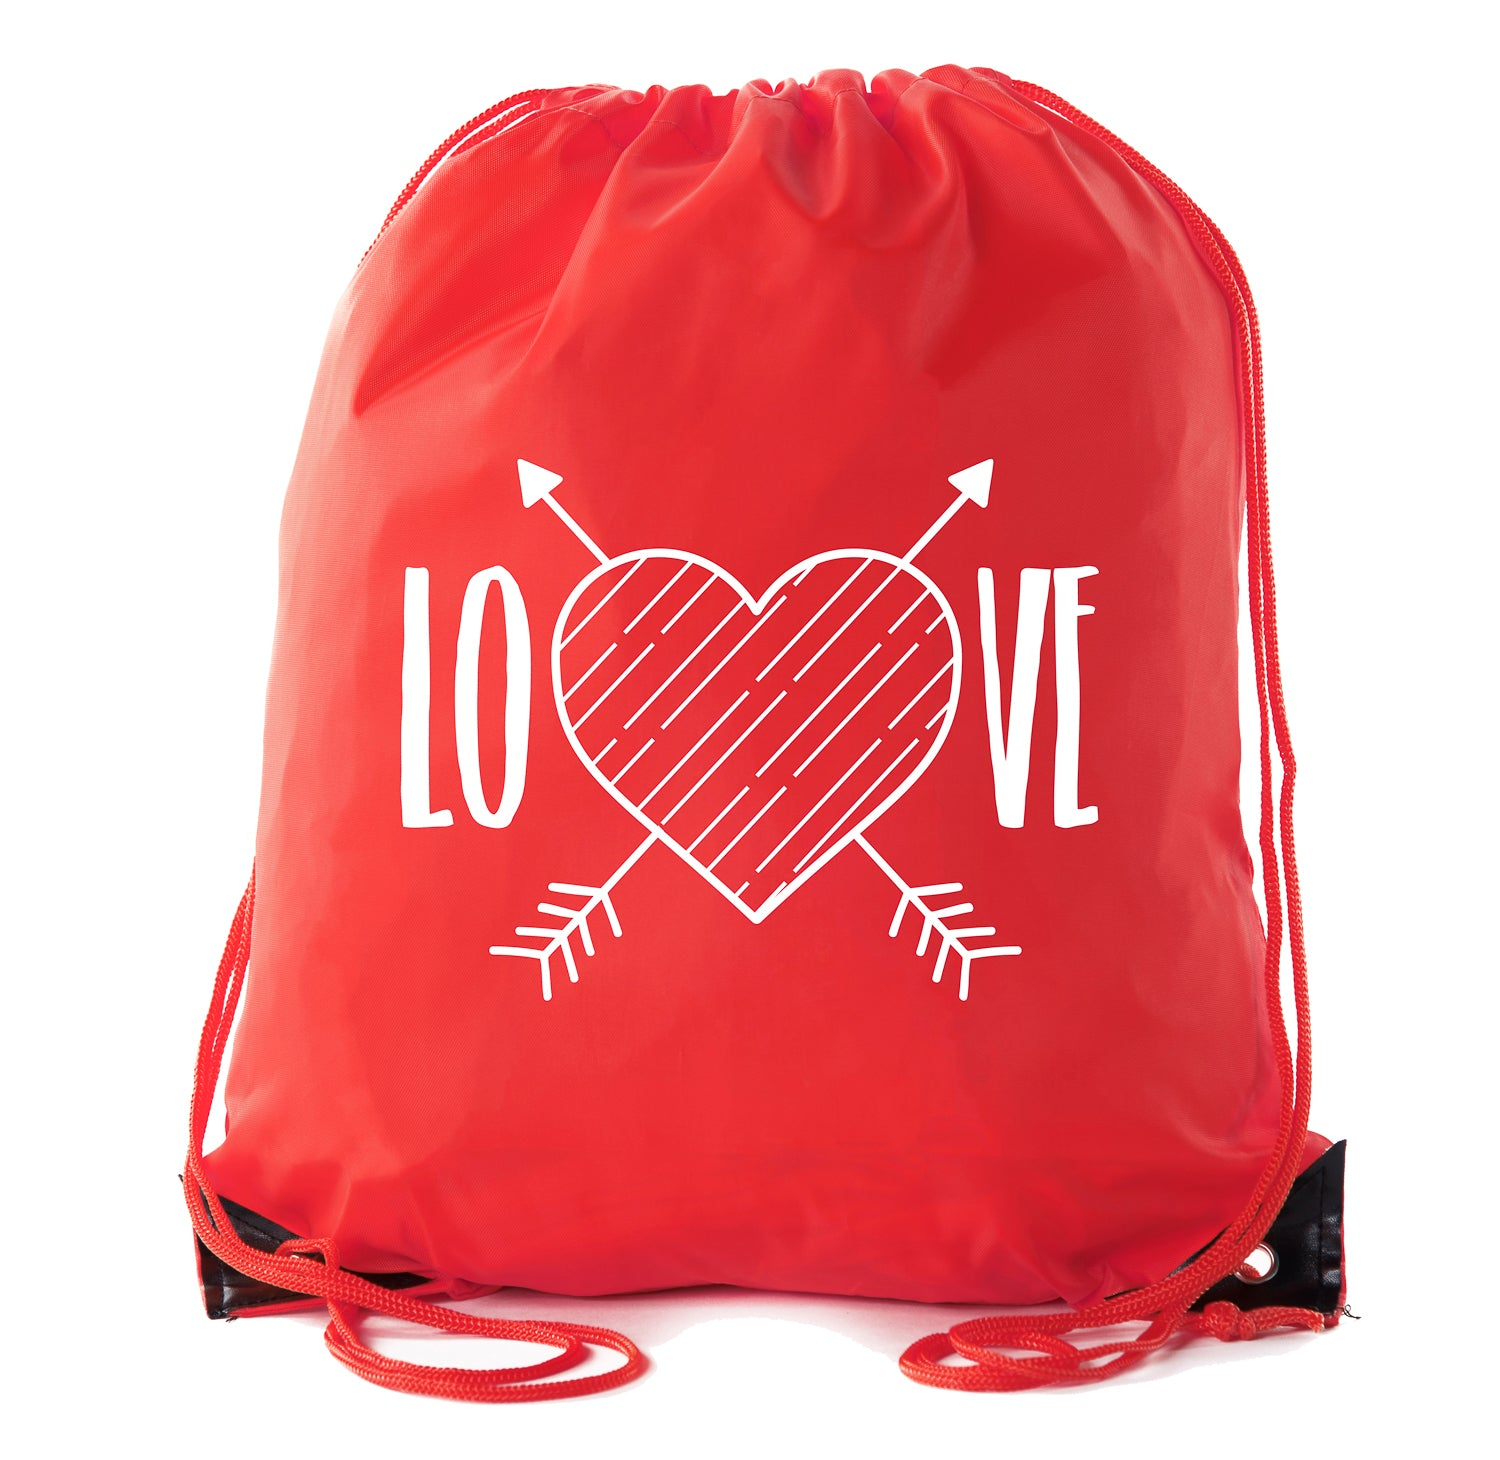 Accessory - Valentine's Day Bags, Drawstring Cinch Backpacks, Valentines Day Gift Bags - Love